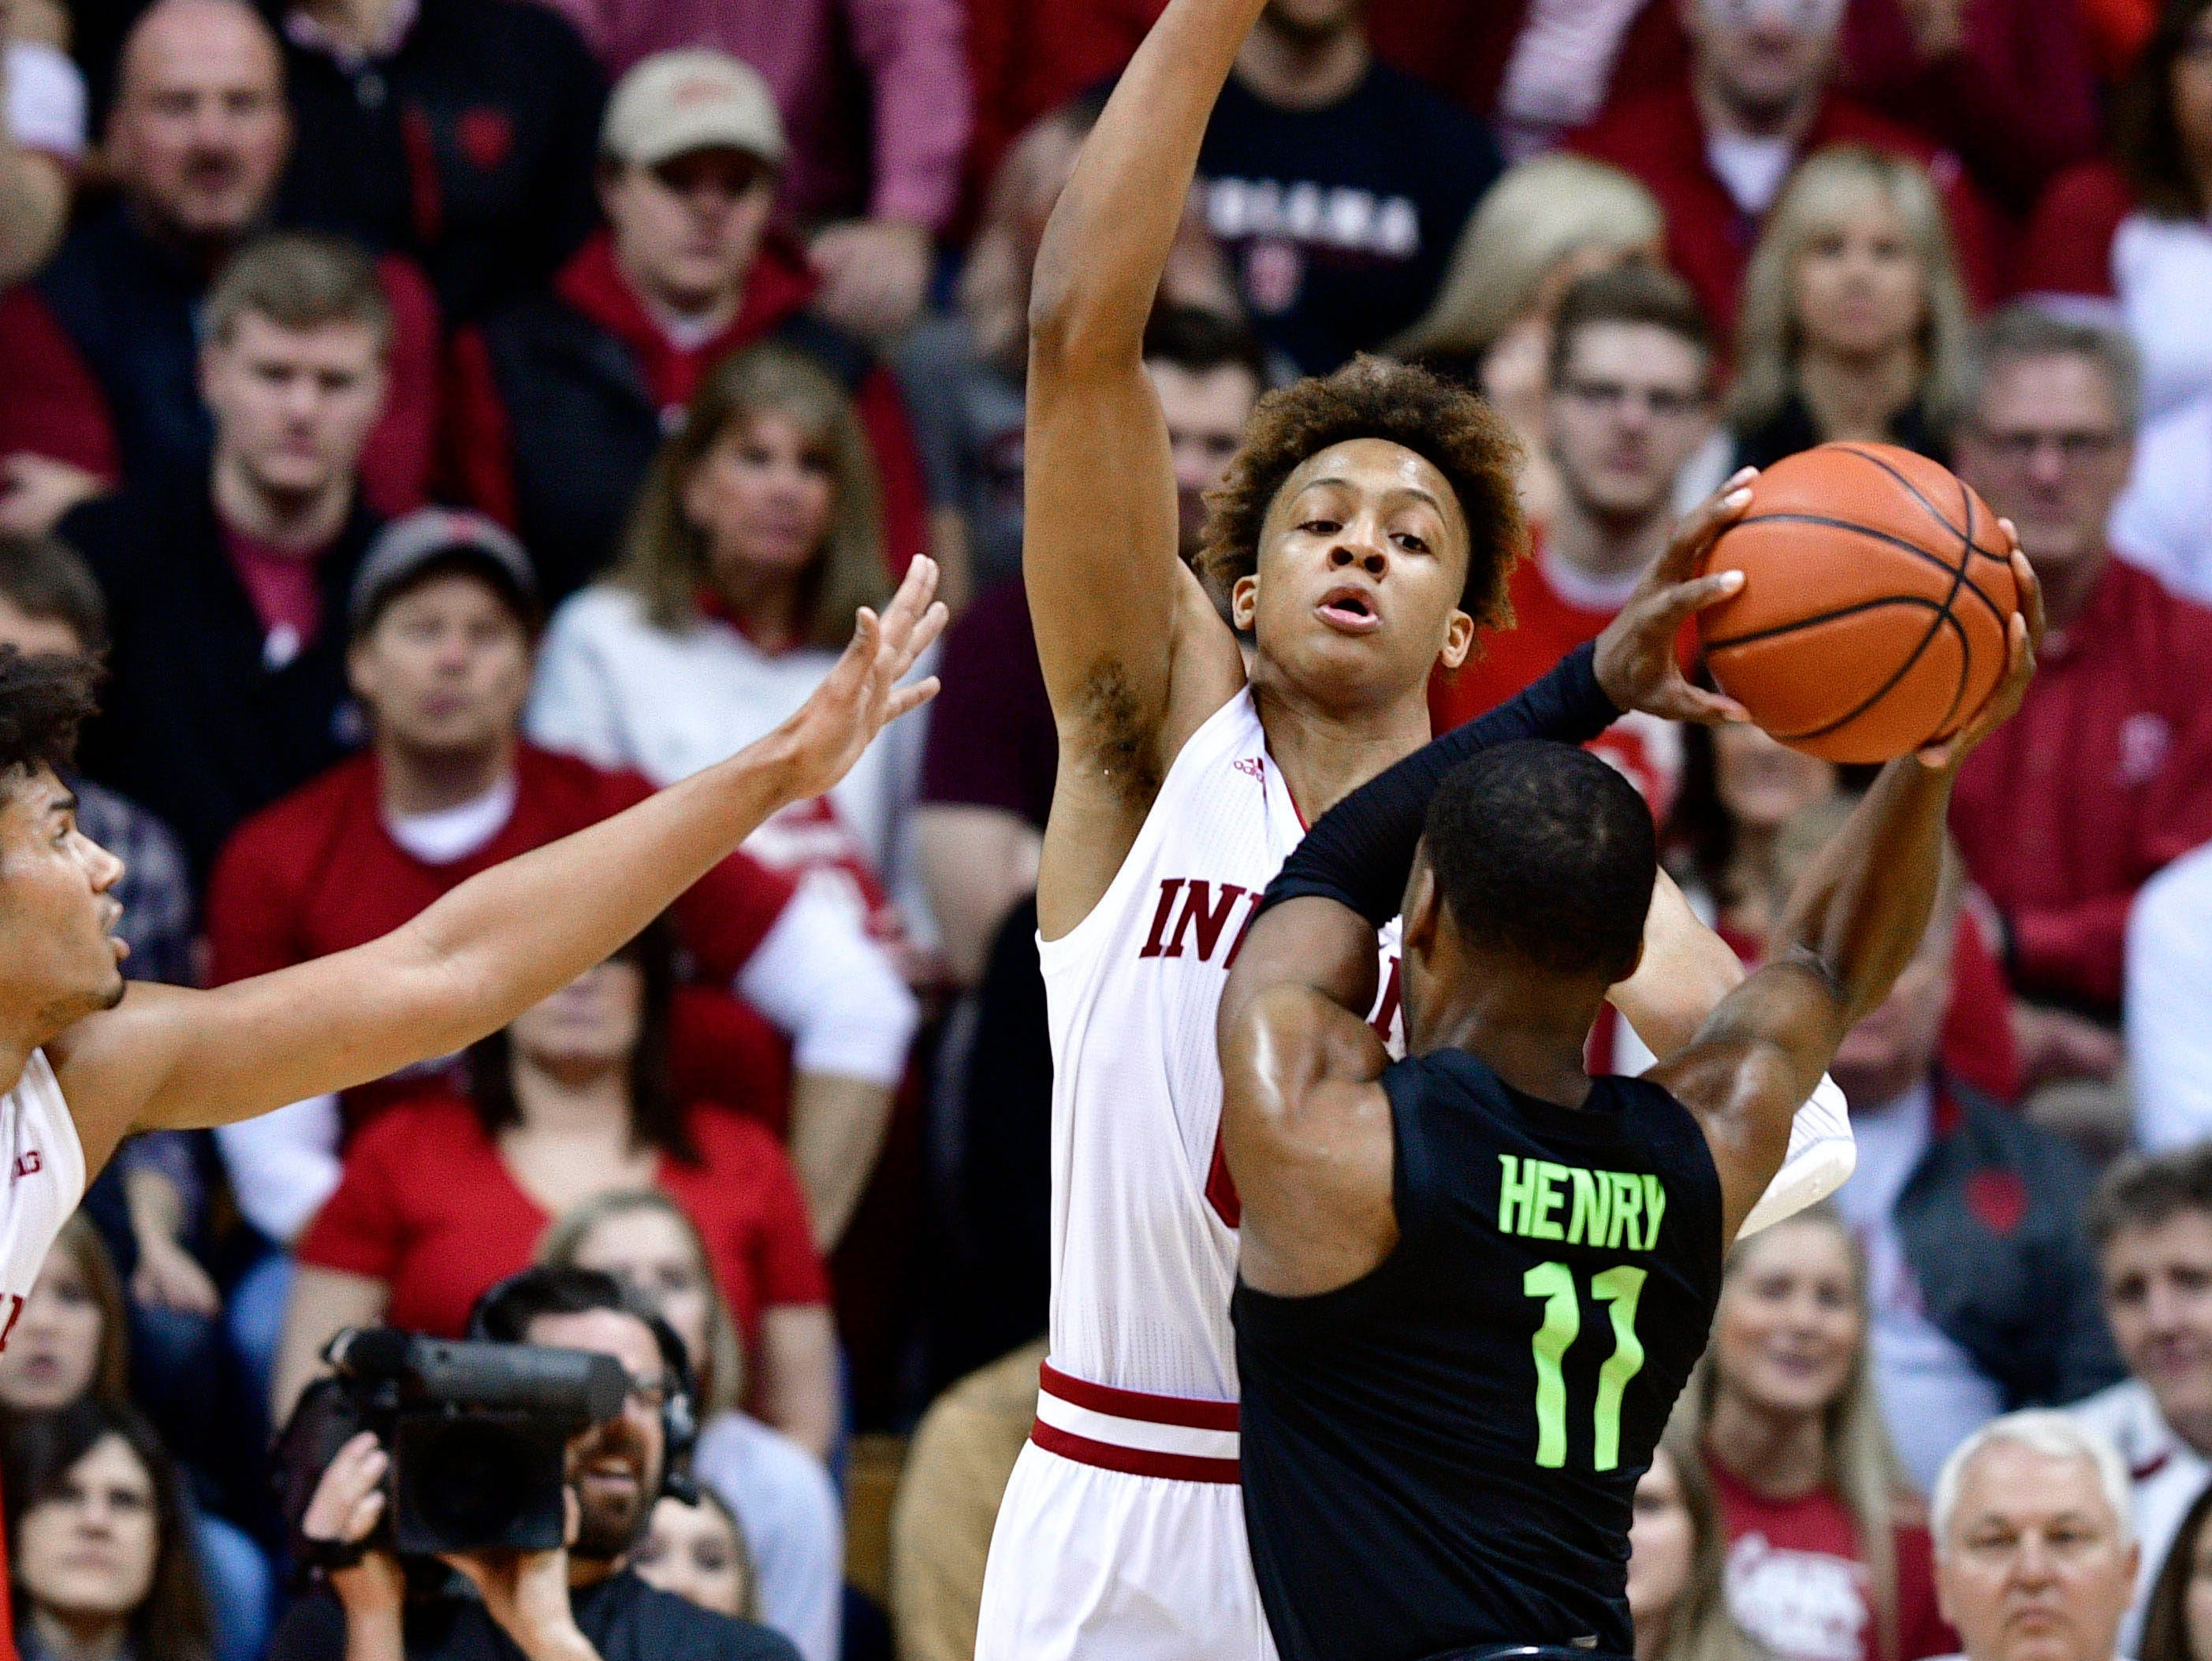 Mar 2, 2019; Bloomington, IN, USA; Indiana Hoosiers guard Romeo Langford (0) attempts to block a shot from Michigan State Spartans forward Aaron Henry (11) go after a loose ball during the first half of the game at Assembly Hall. Mandatory Credit: Marc Lebryk-USA TODAY Sports